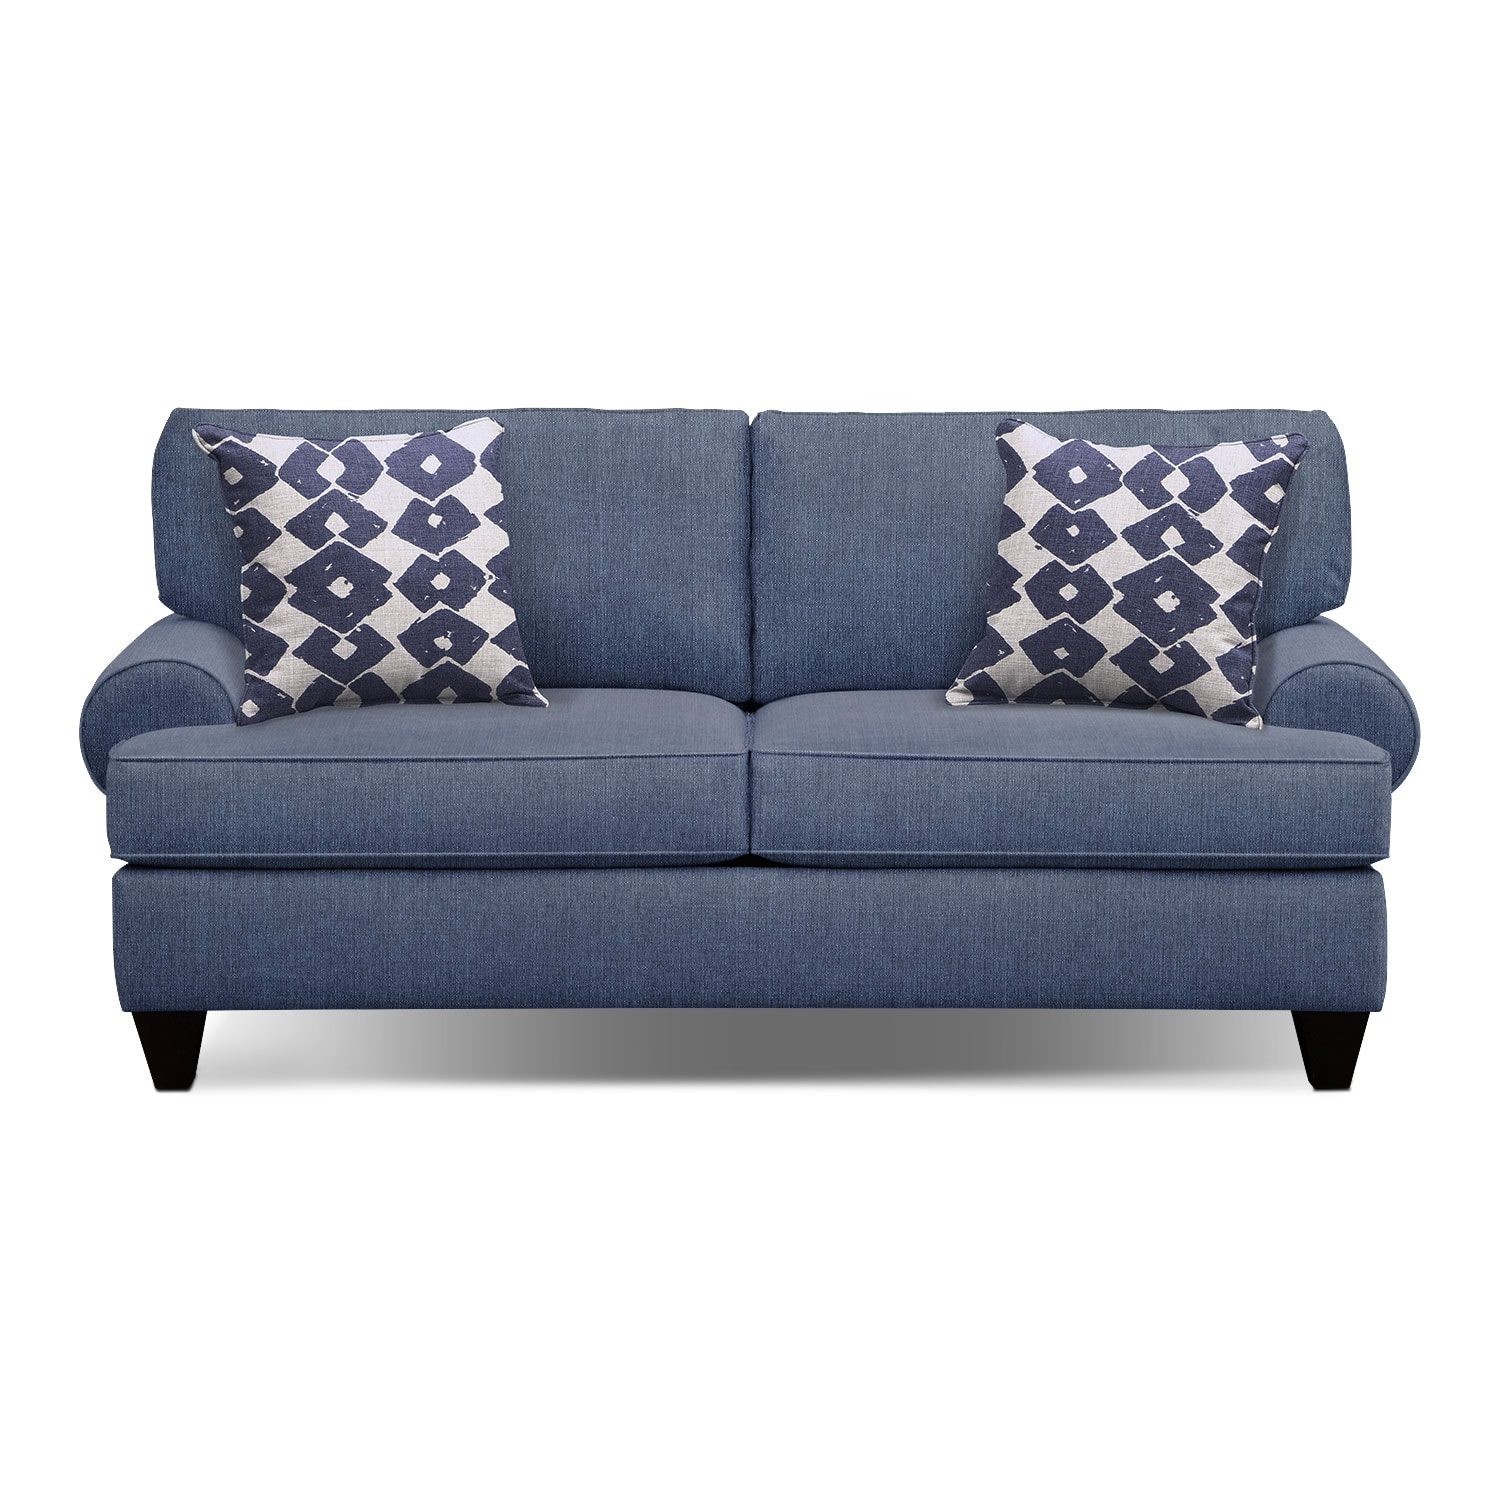 "Bailey Blue 79"" Sofa"